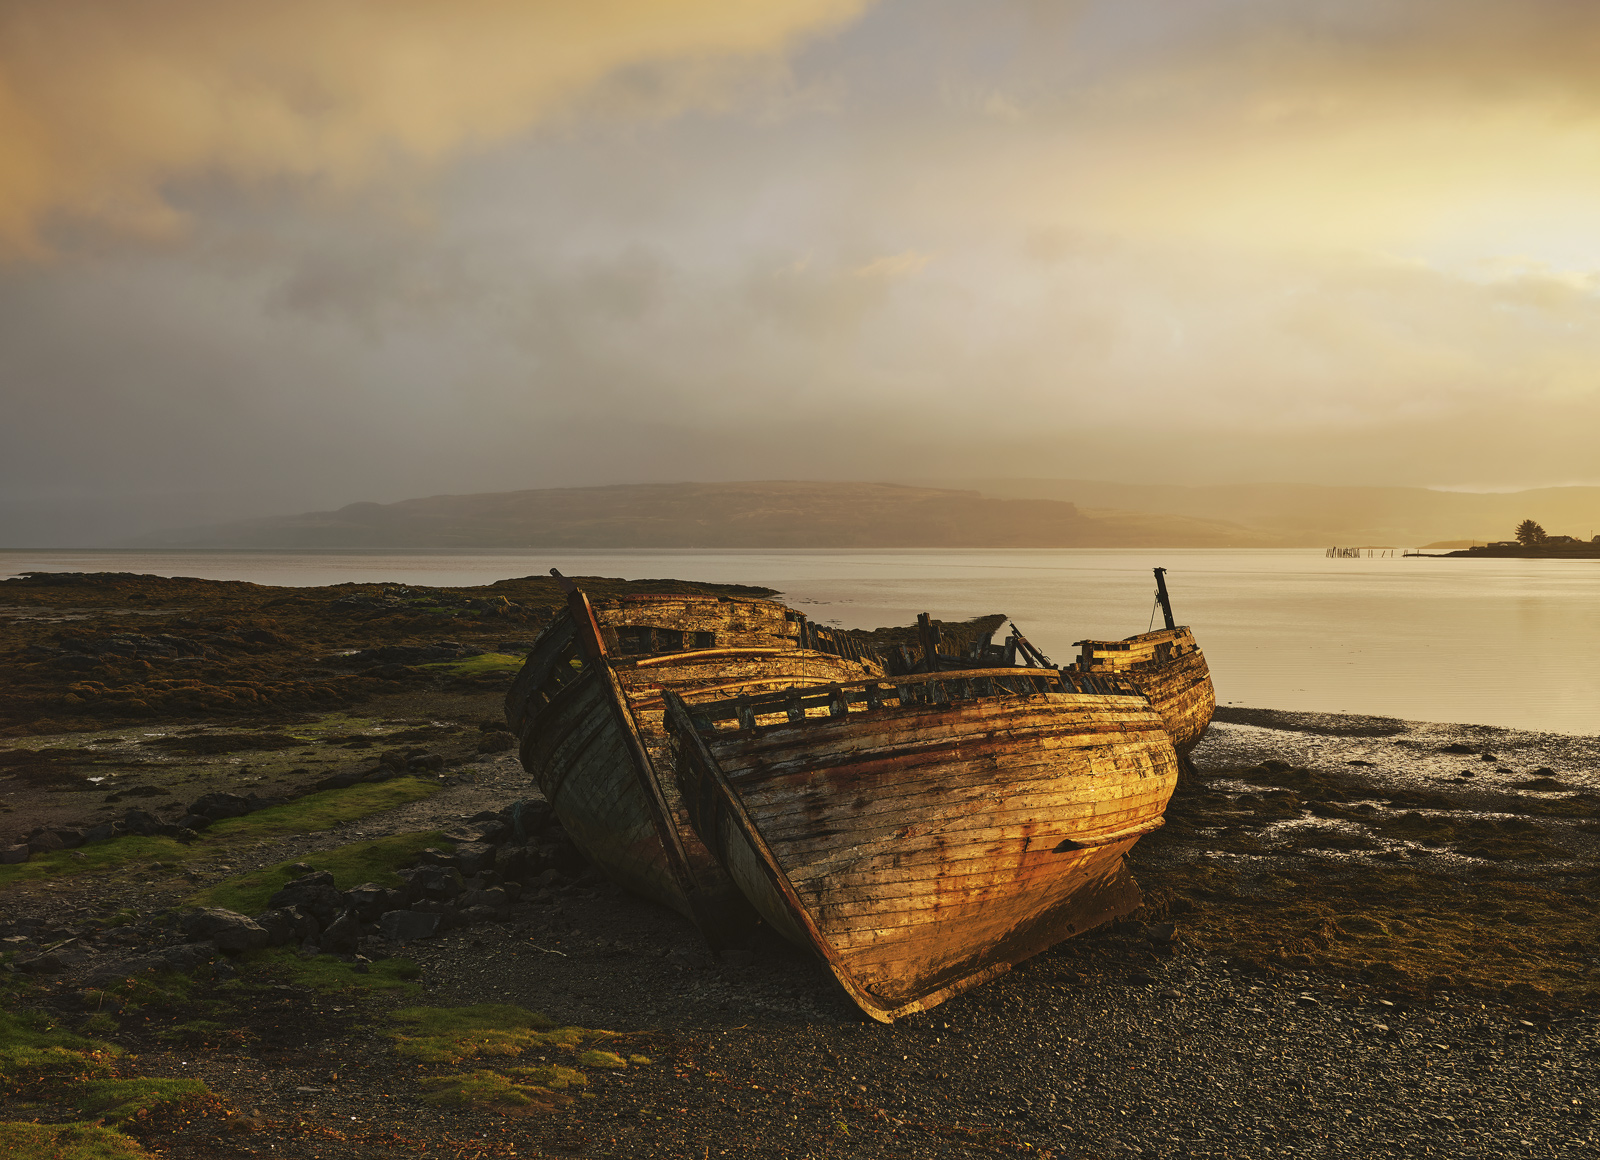 These old boats decrepit and decaying have been hauled up on the beach at Salen for years and photographed countless times....